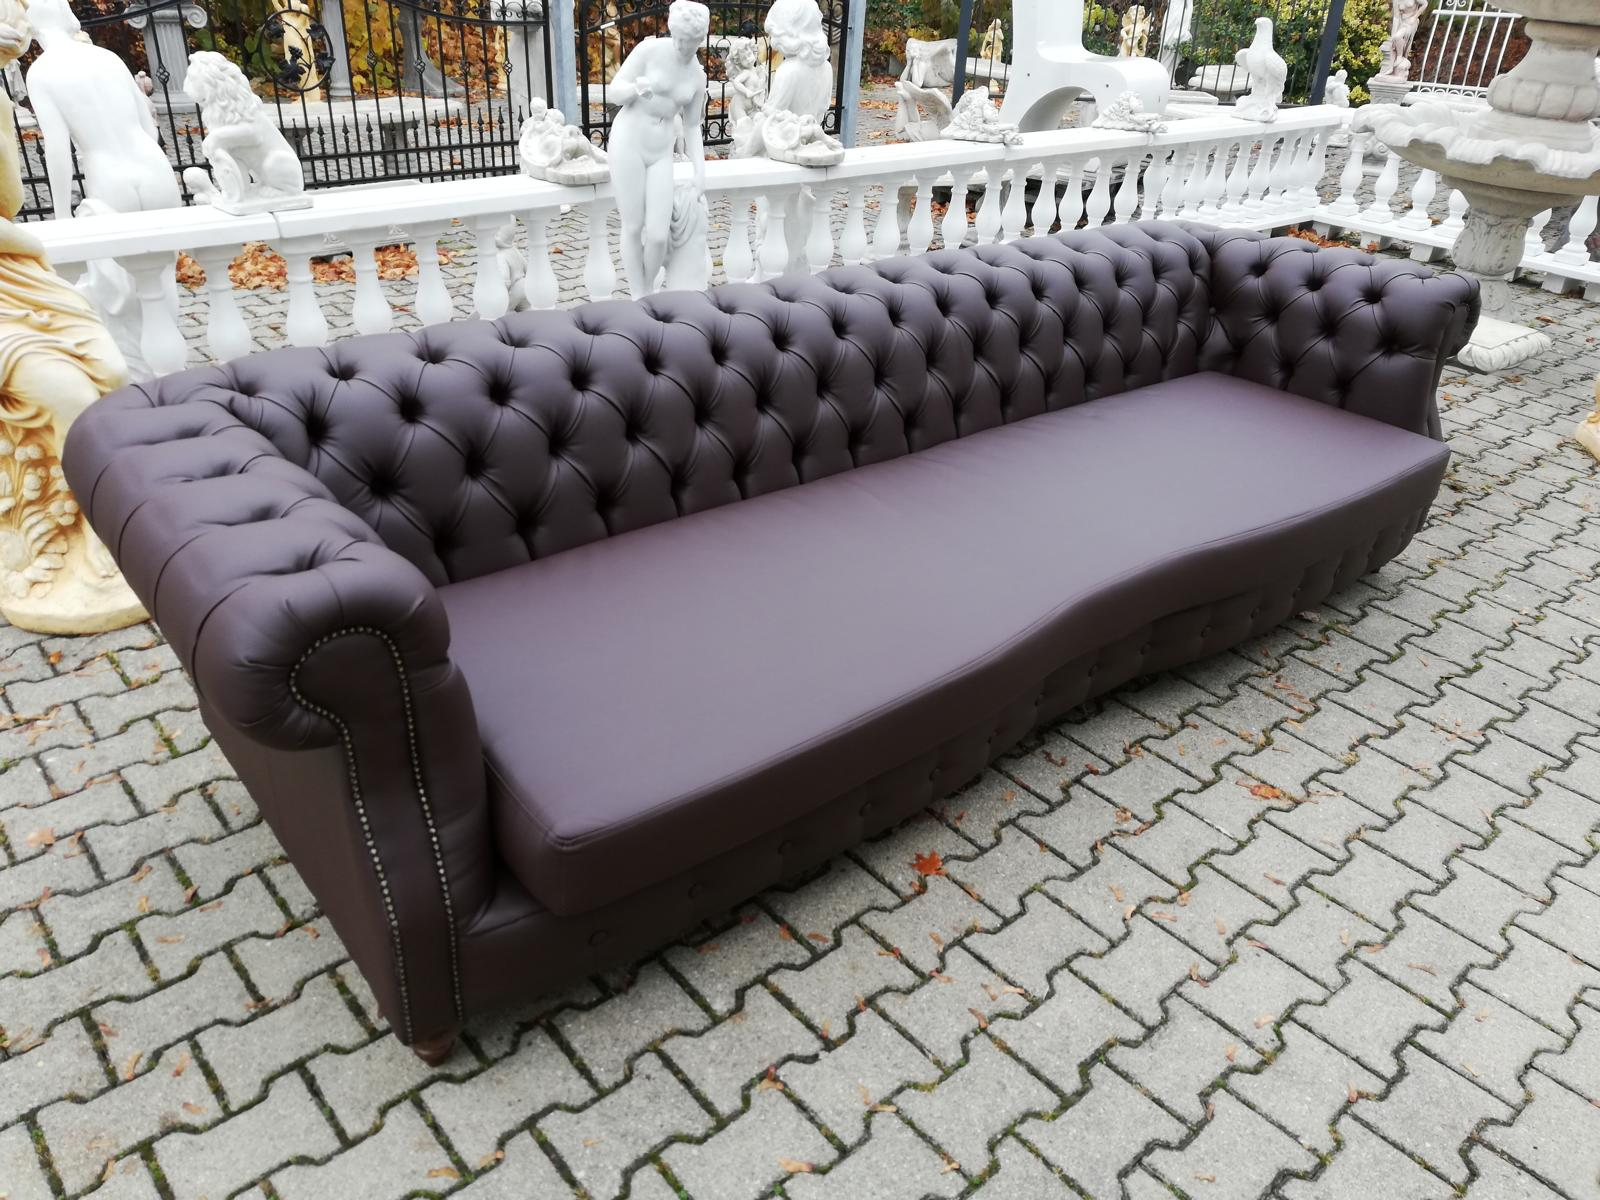 Design Chesterfield Charly 3 m Braun Couch Polster Sofas ...